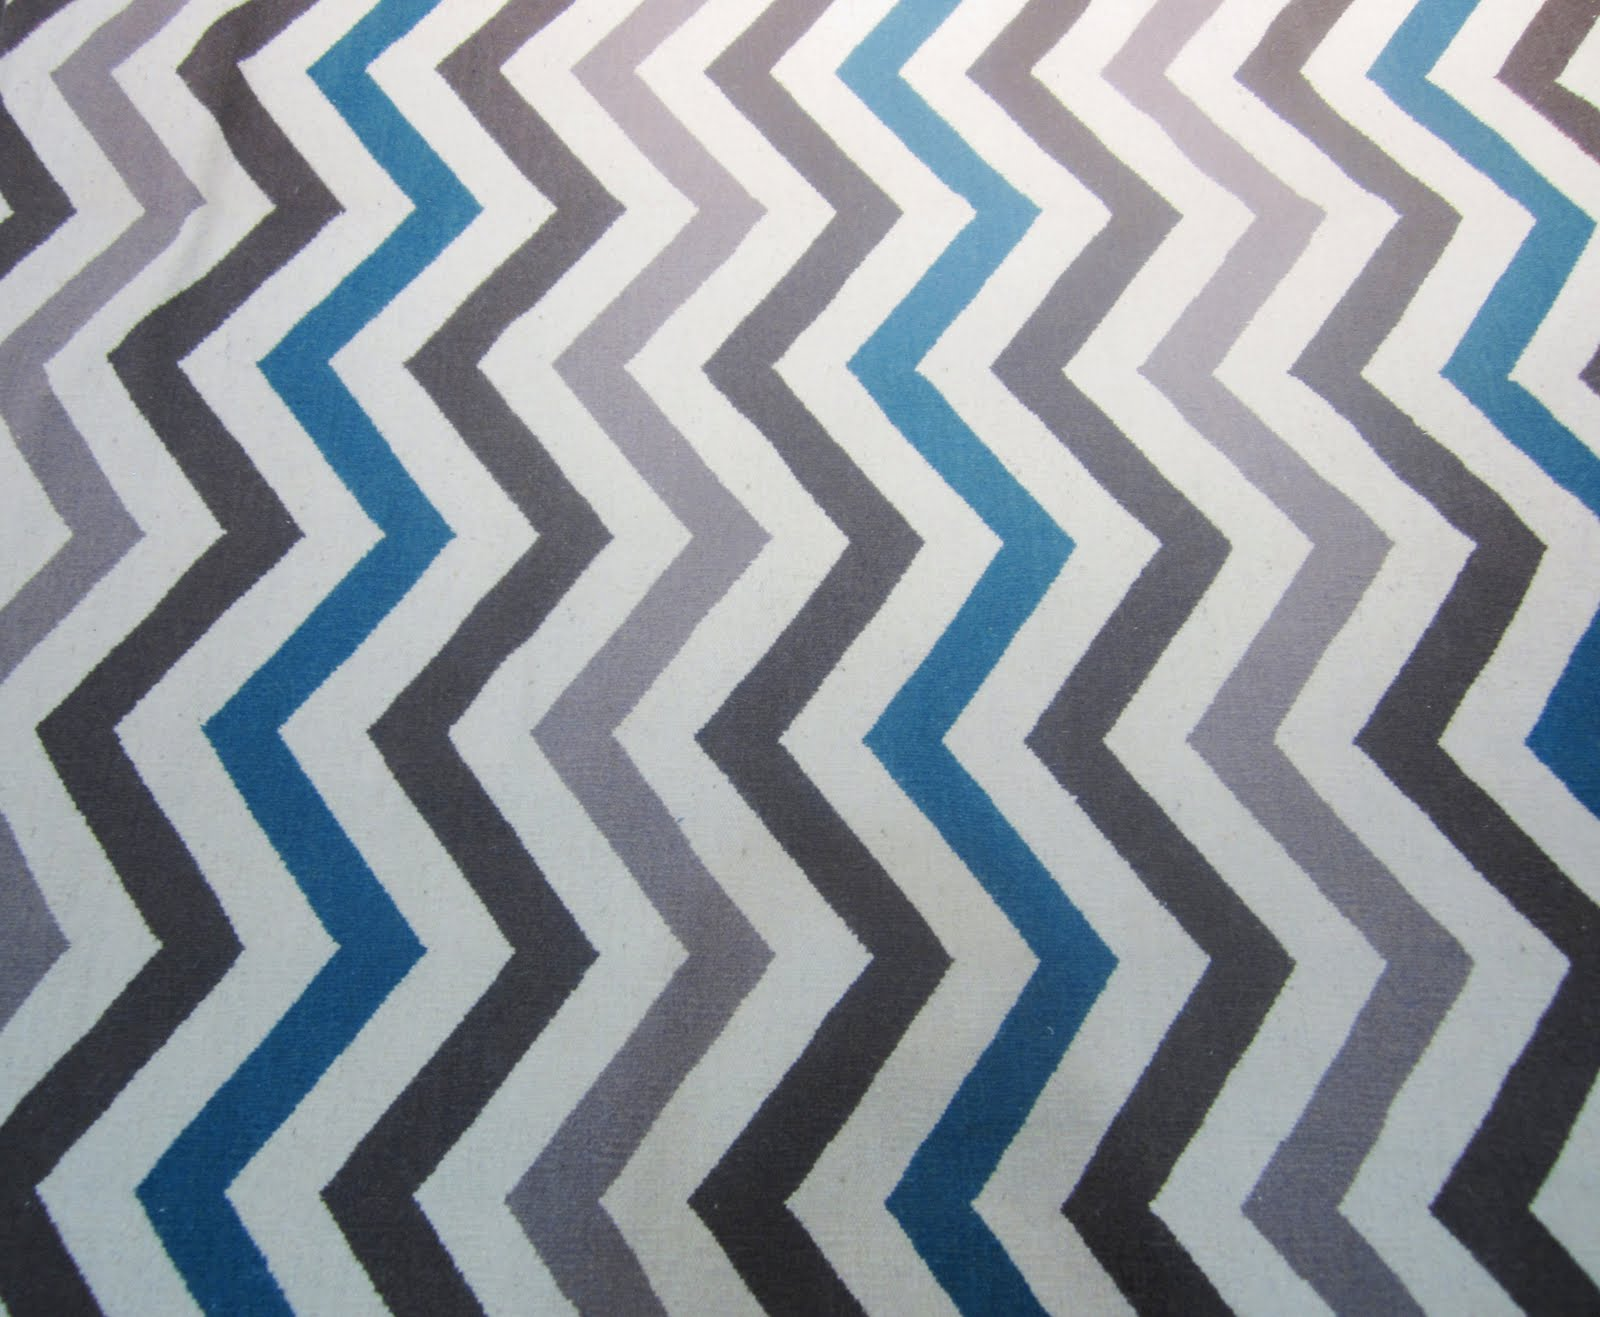 Ballard Designs Chevron Rug | Chevron Cotton Rug | Chevron Rug